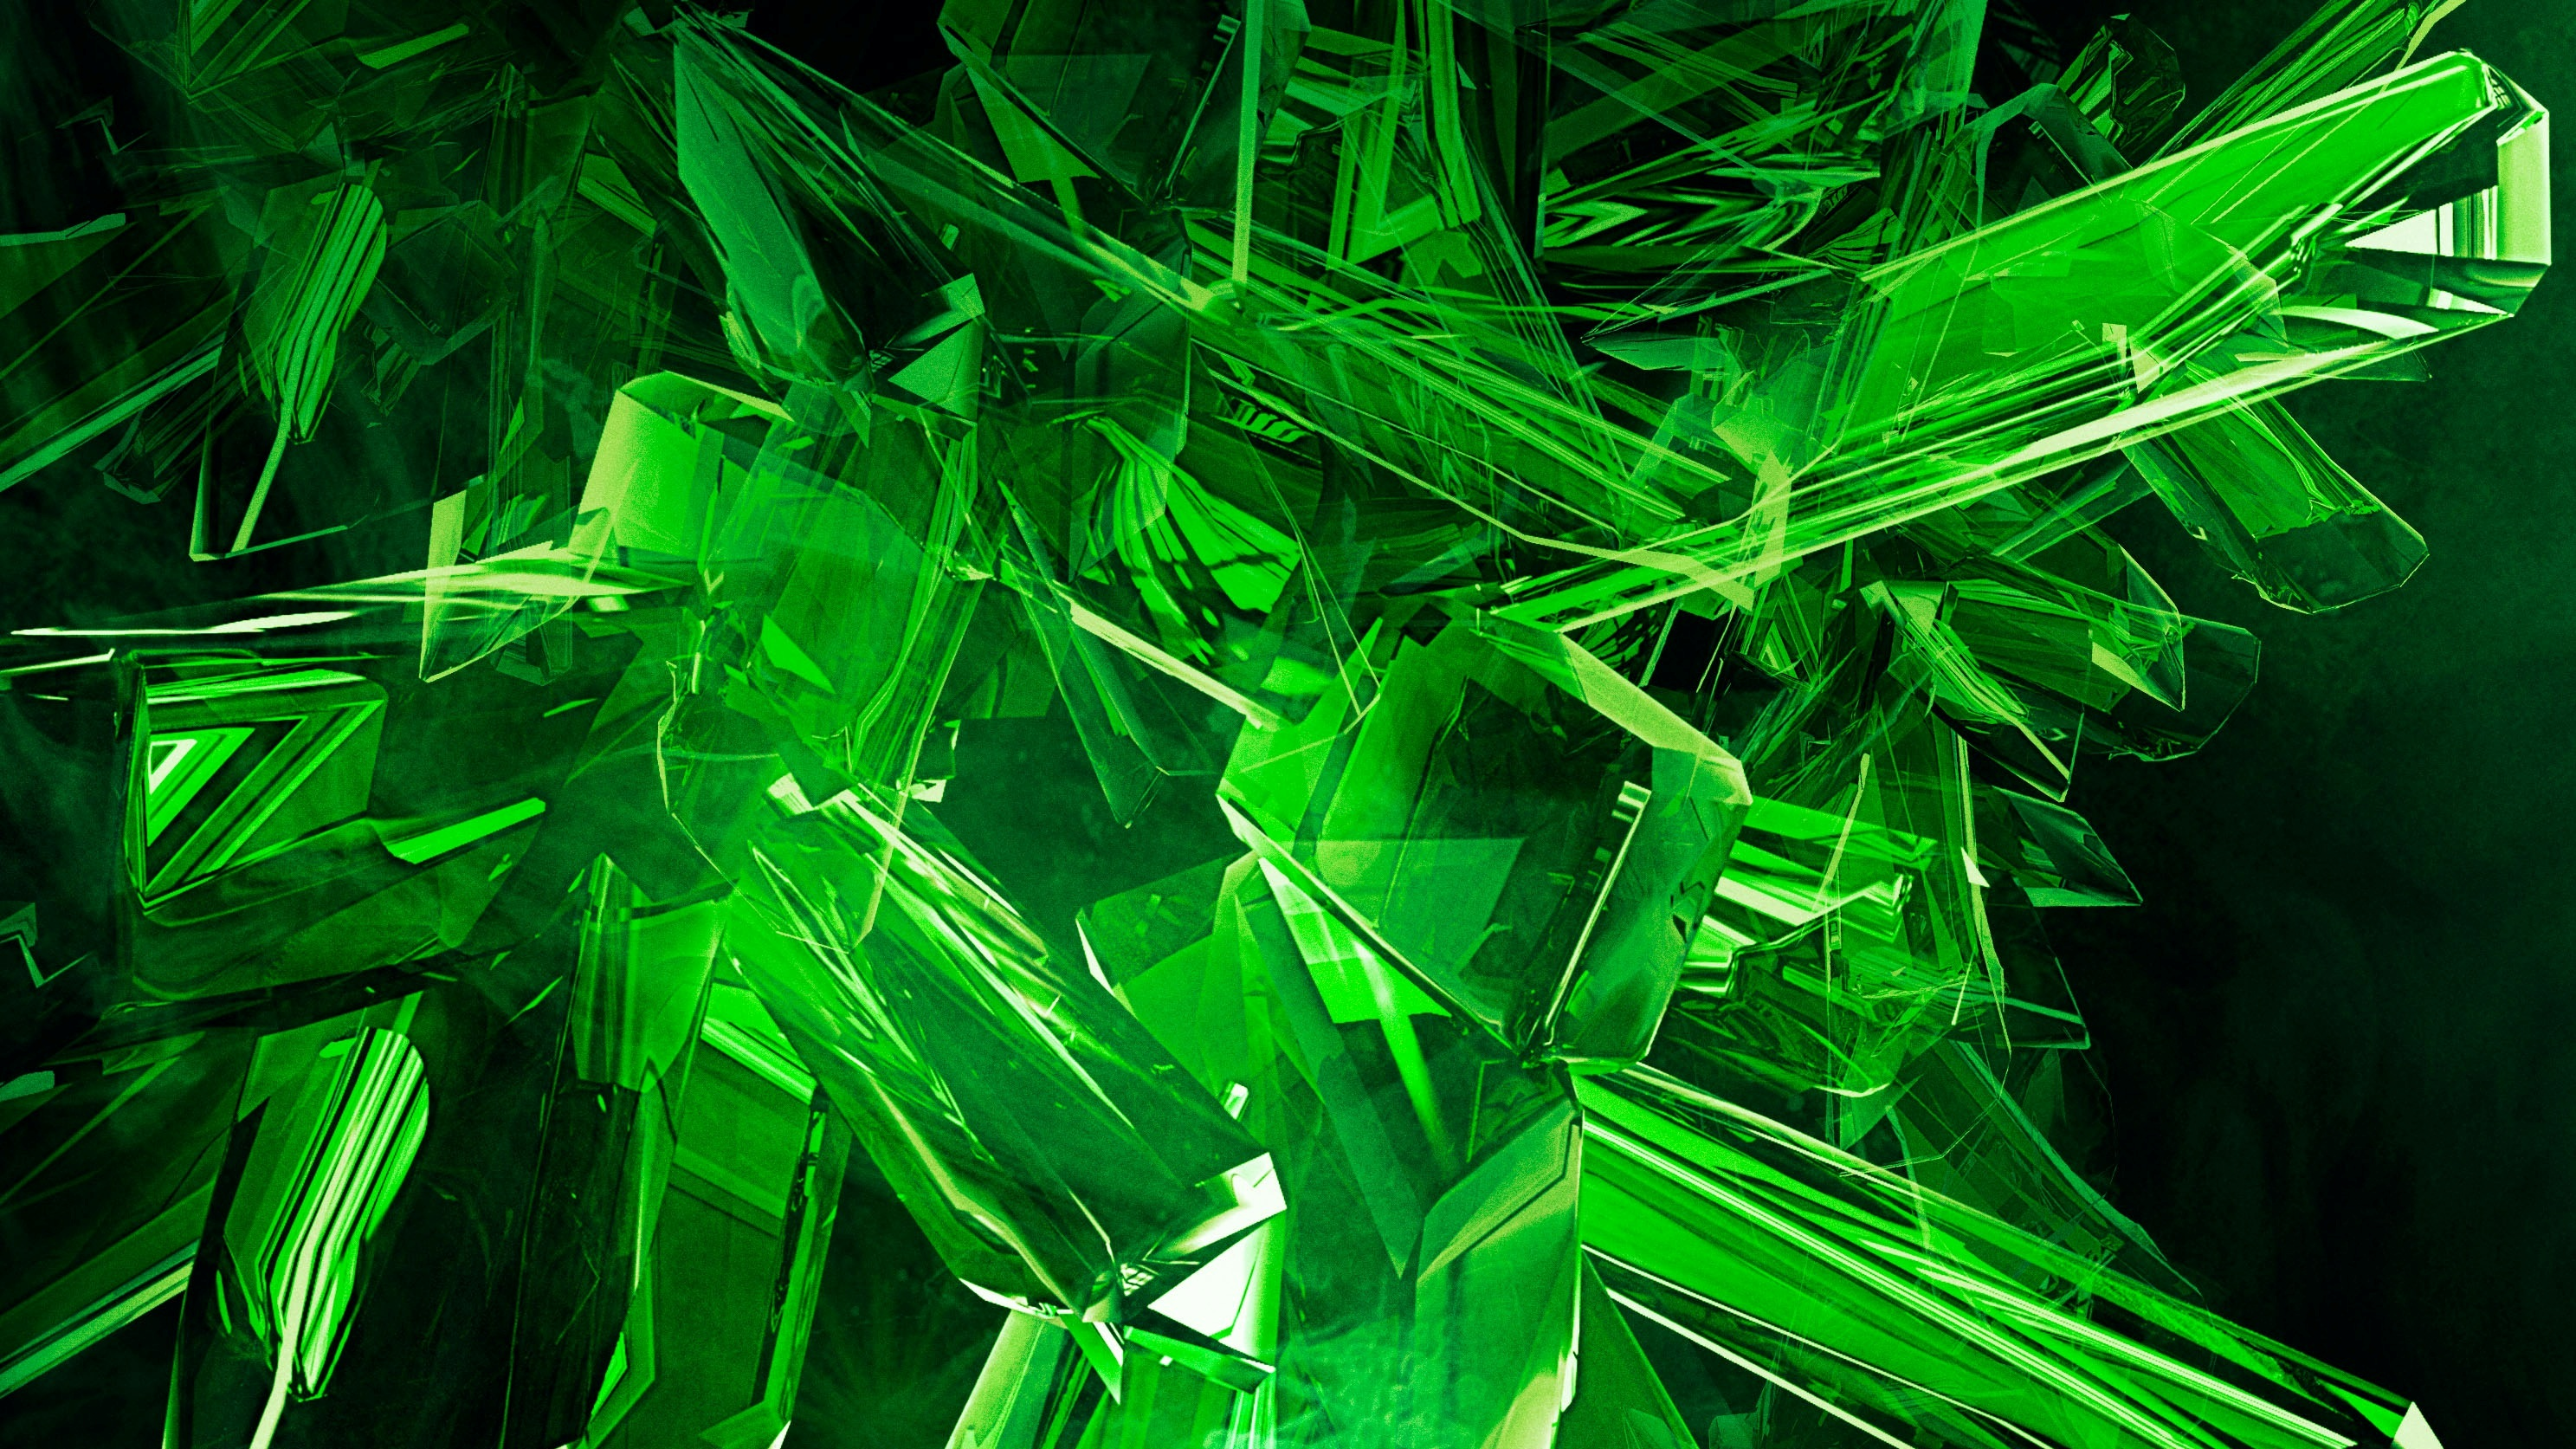 green 3d view abstract gems cool desktop hd wallpaper 14591jpg 2975x1673